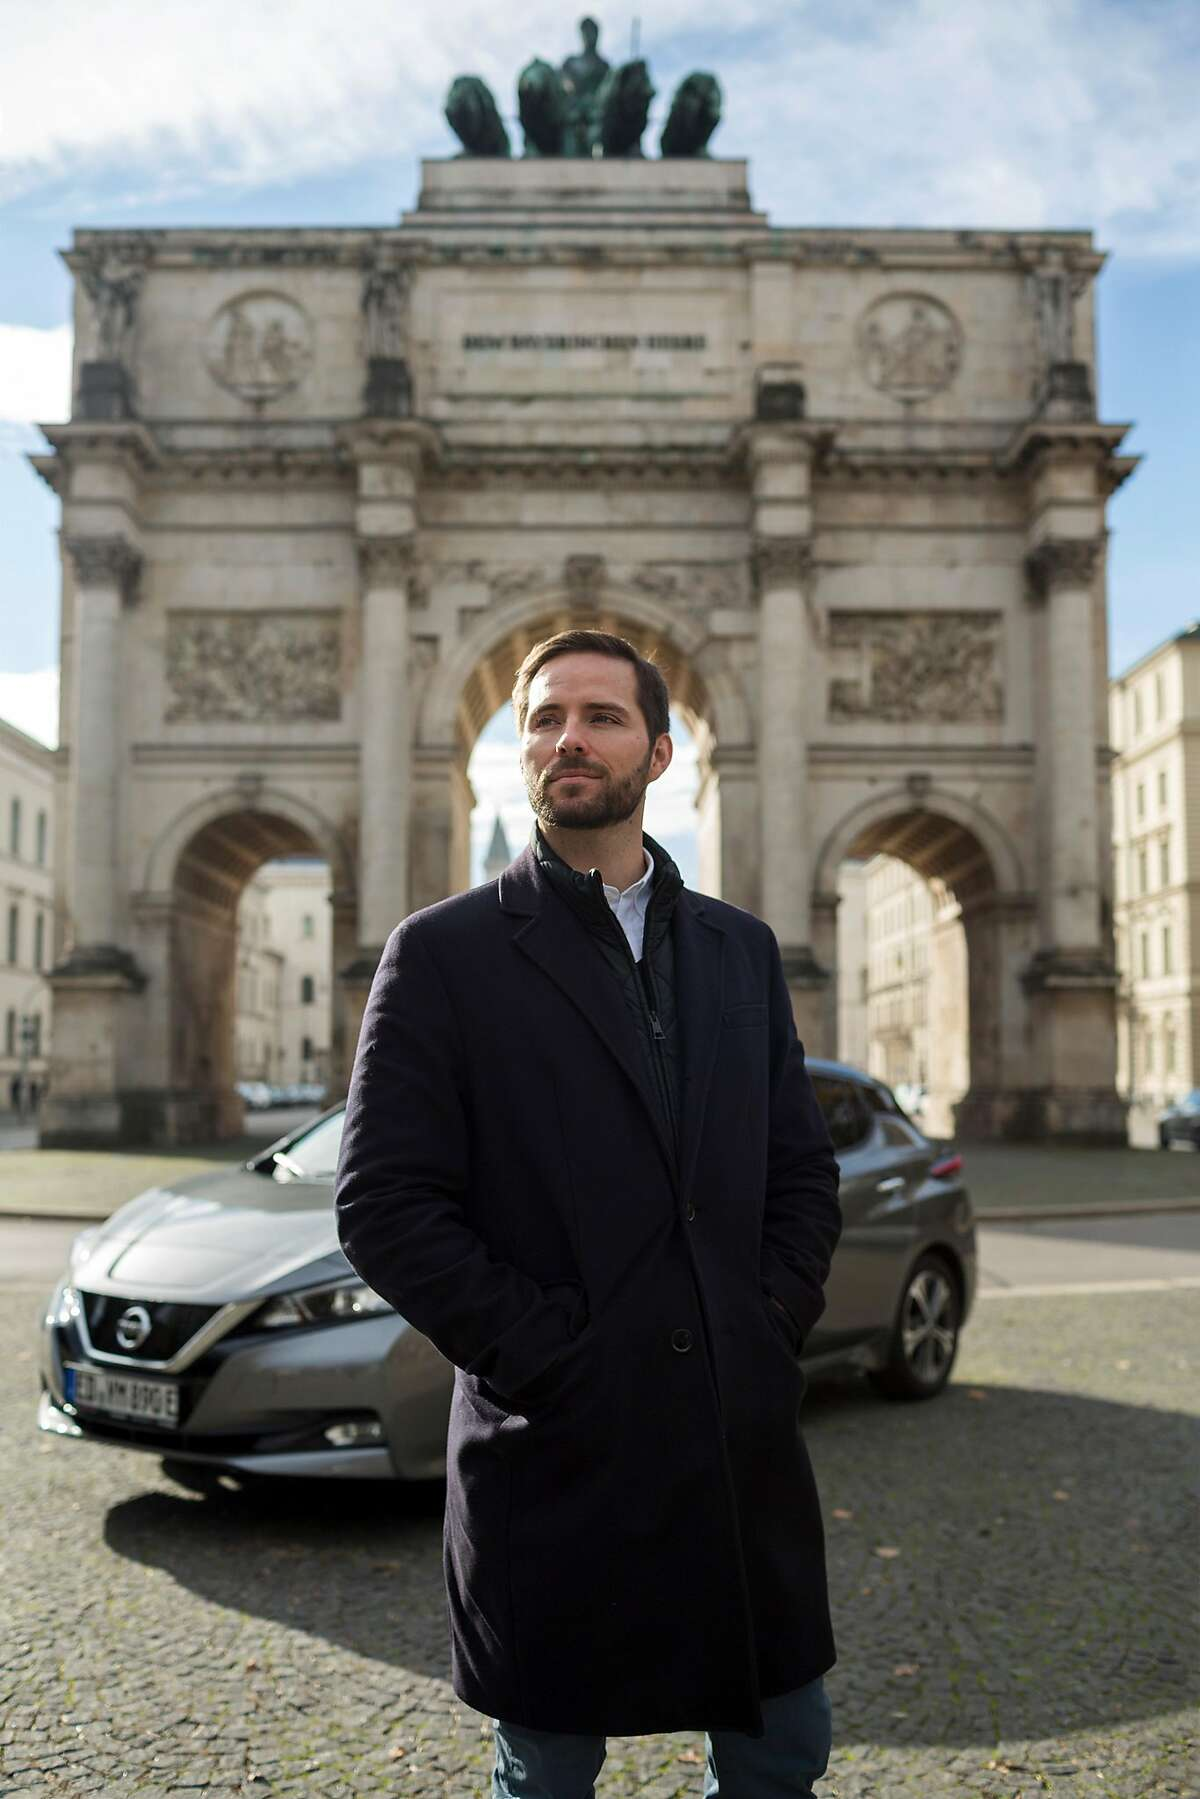 Christoph Weigler, Uber's general manager in Germany, in Munich, Germany, Nov. 5, 2018. Uber retreated from many towns in Germany in 2015 after battling regulators. Now the ride-hailing company has re-entered the city of D�sseldorf. (Louisa Marie Summer/The New York Times)